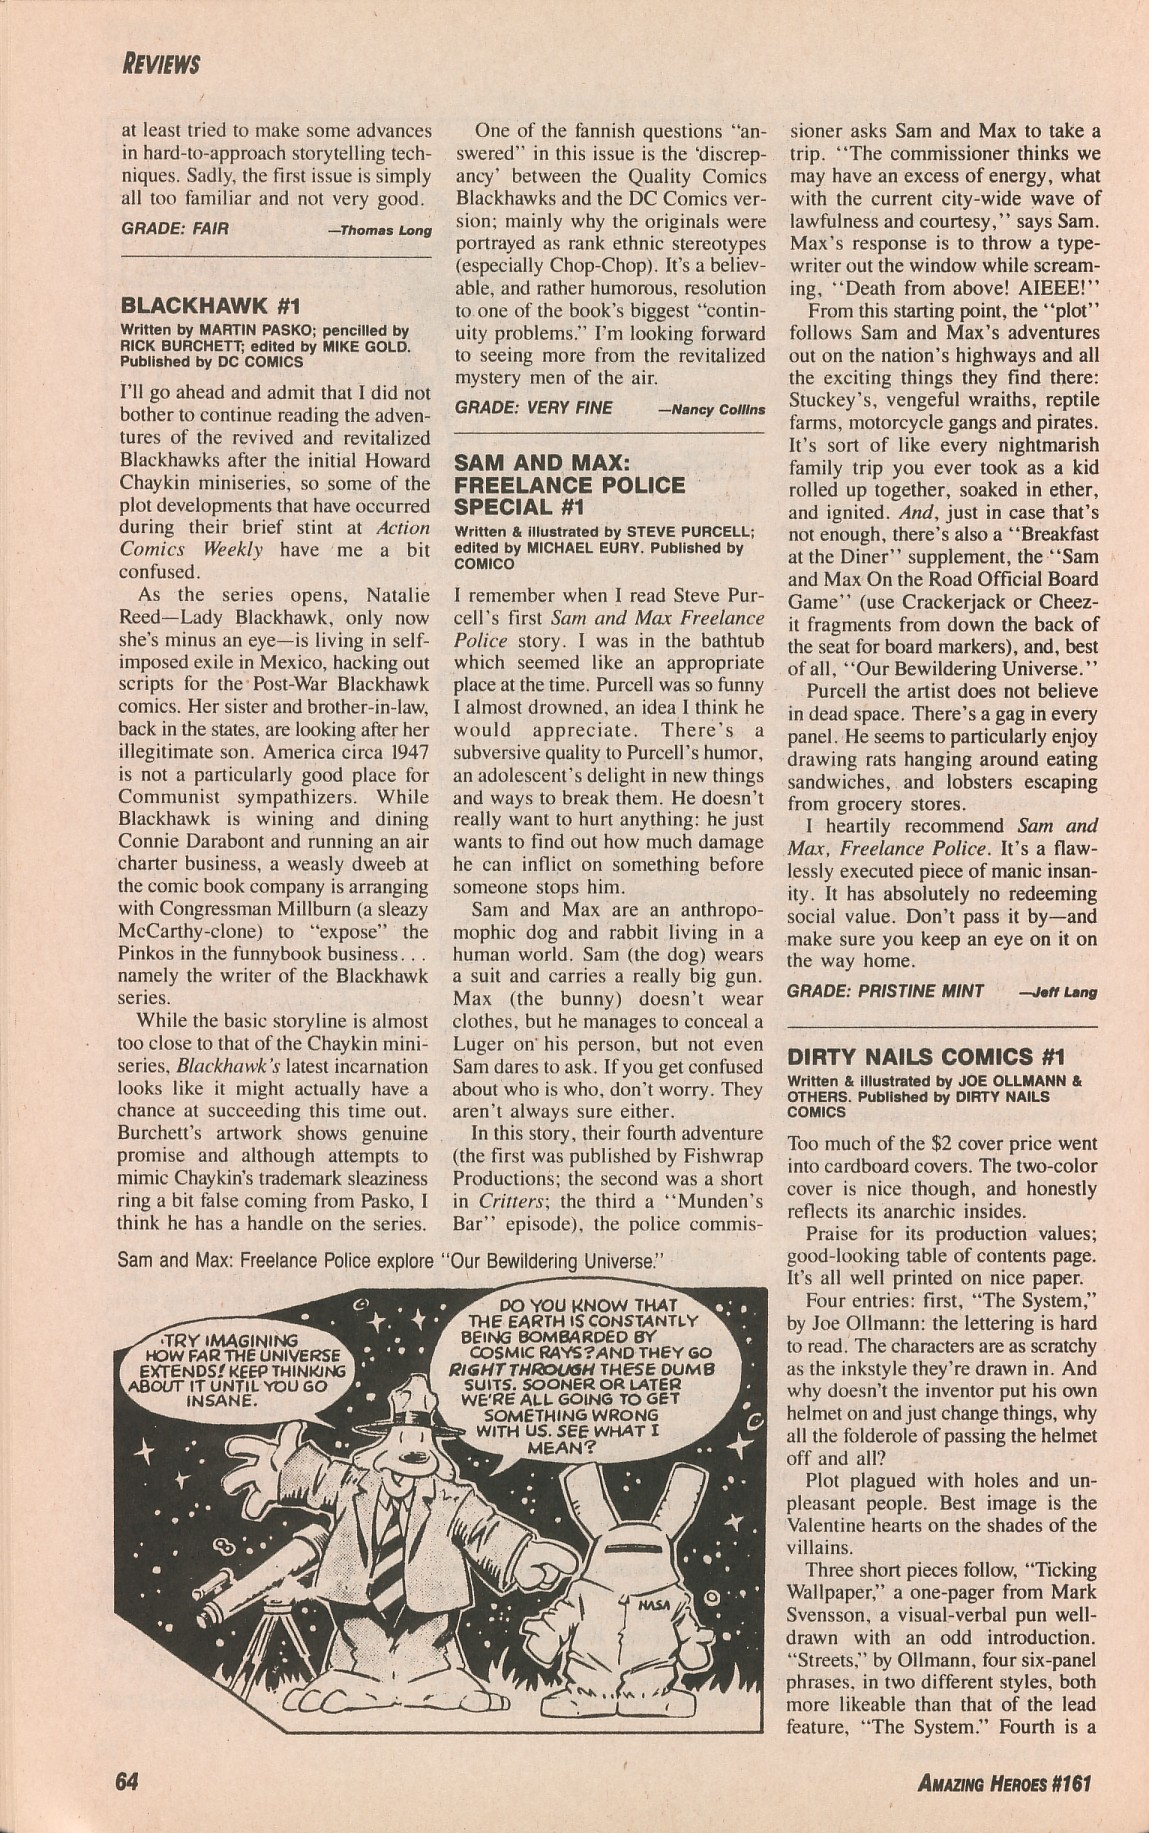 Read online Amazing Heroes comic -  Issue #161 - 64